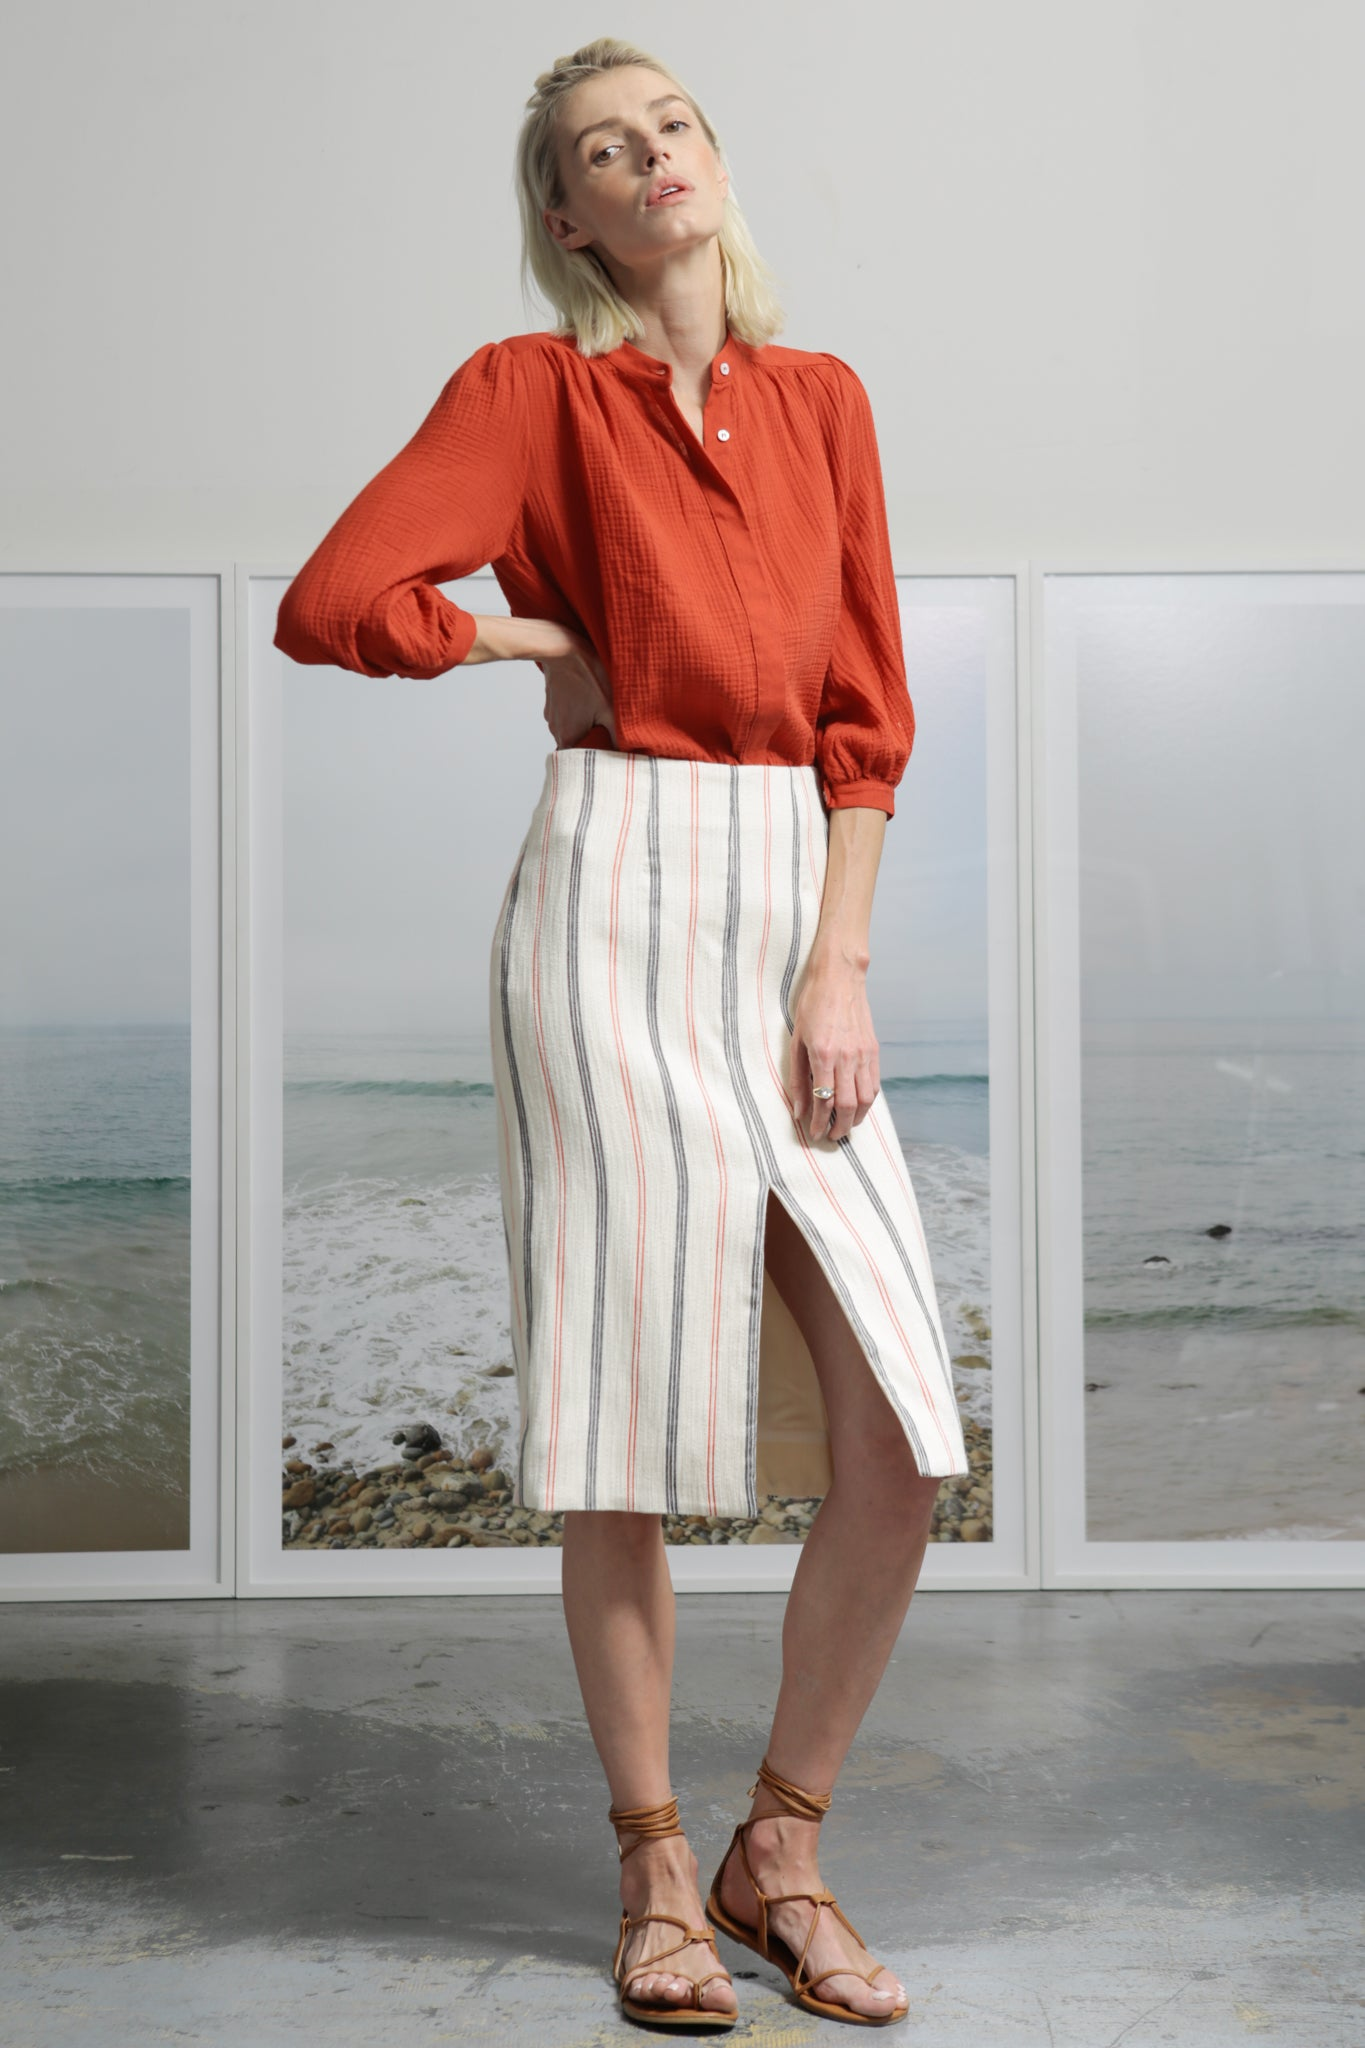 Model wears size 4 EMBER SKIRT - IVORY by Heidi Merrick made in Downtown Los Angeles